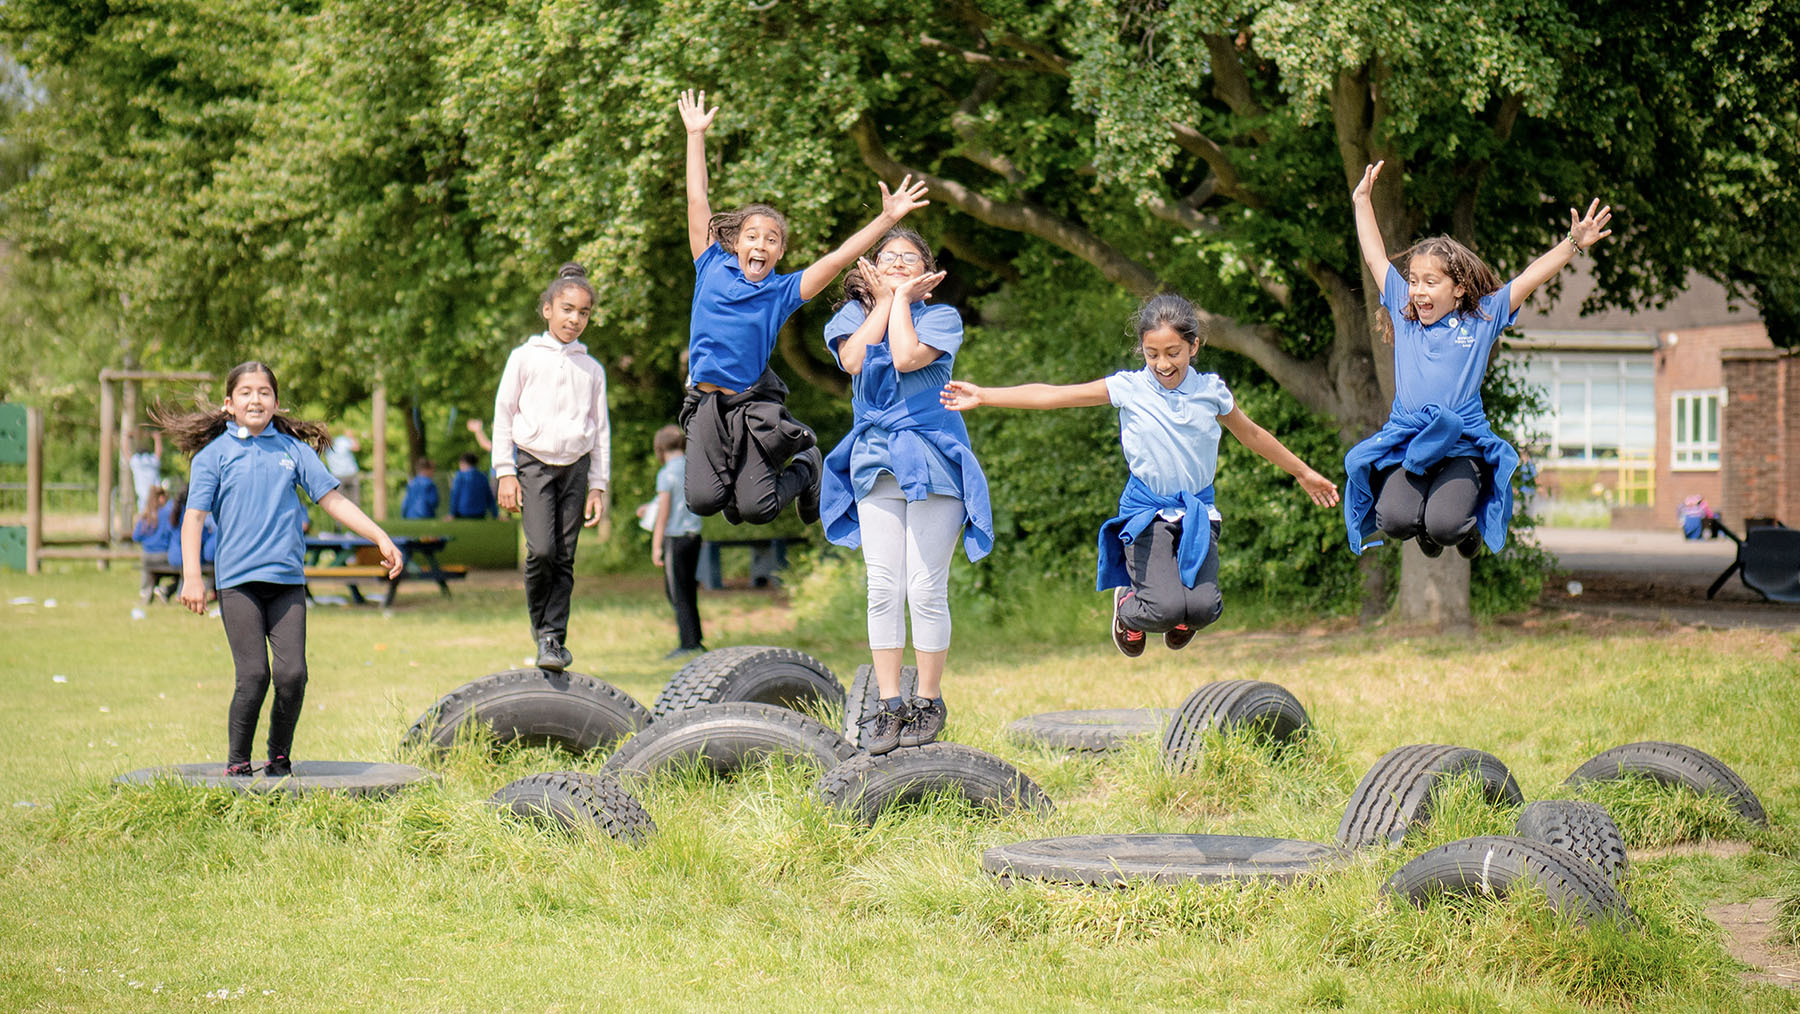 Girls jumping in the air from tyres on the playing field